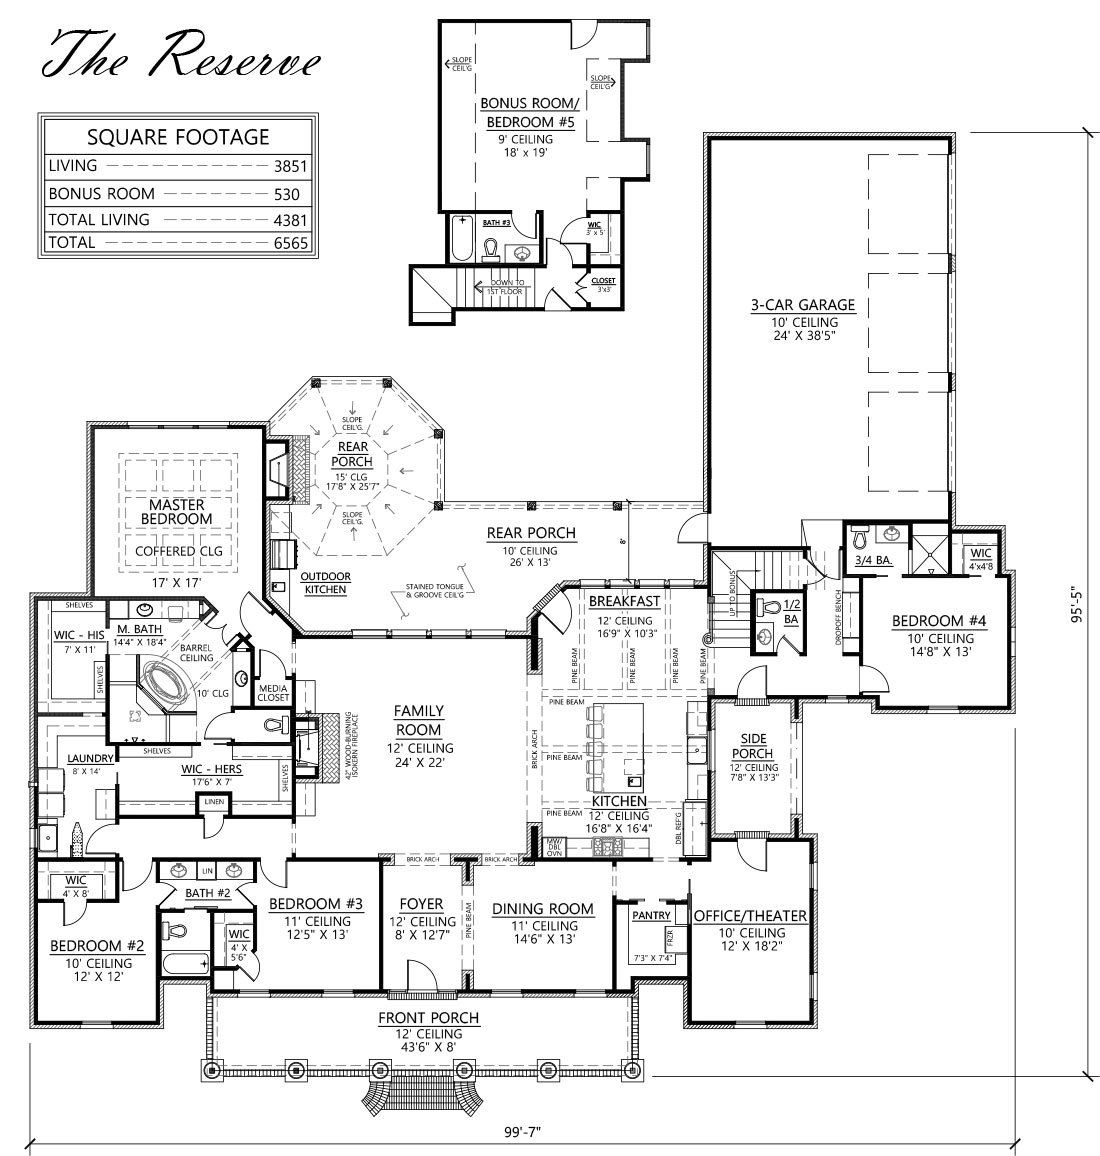 Madden Home Design The Reserve Louisiana Style House Plan 5 Bedrooms 4 5 Baths Bonus Room Of Madden Home Design Acadian House Plans Southern House Plans